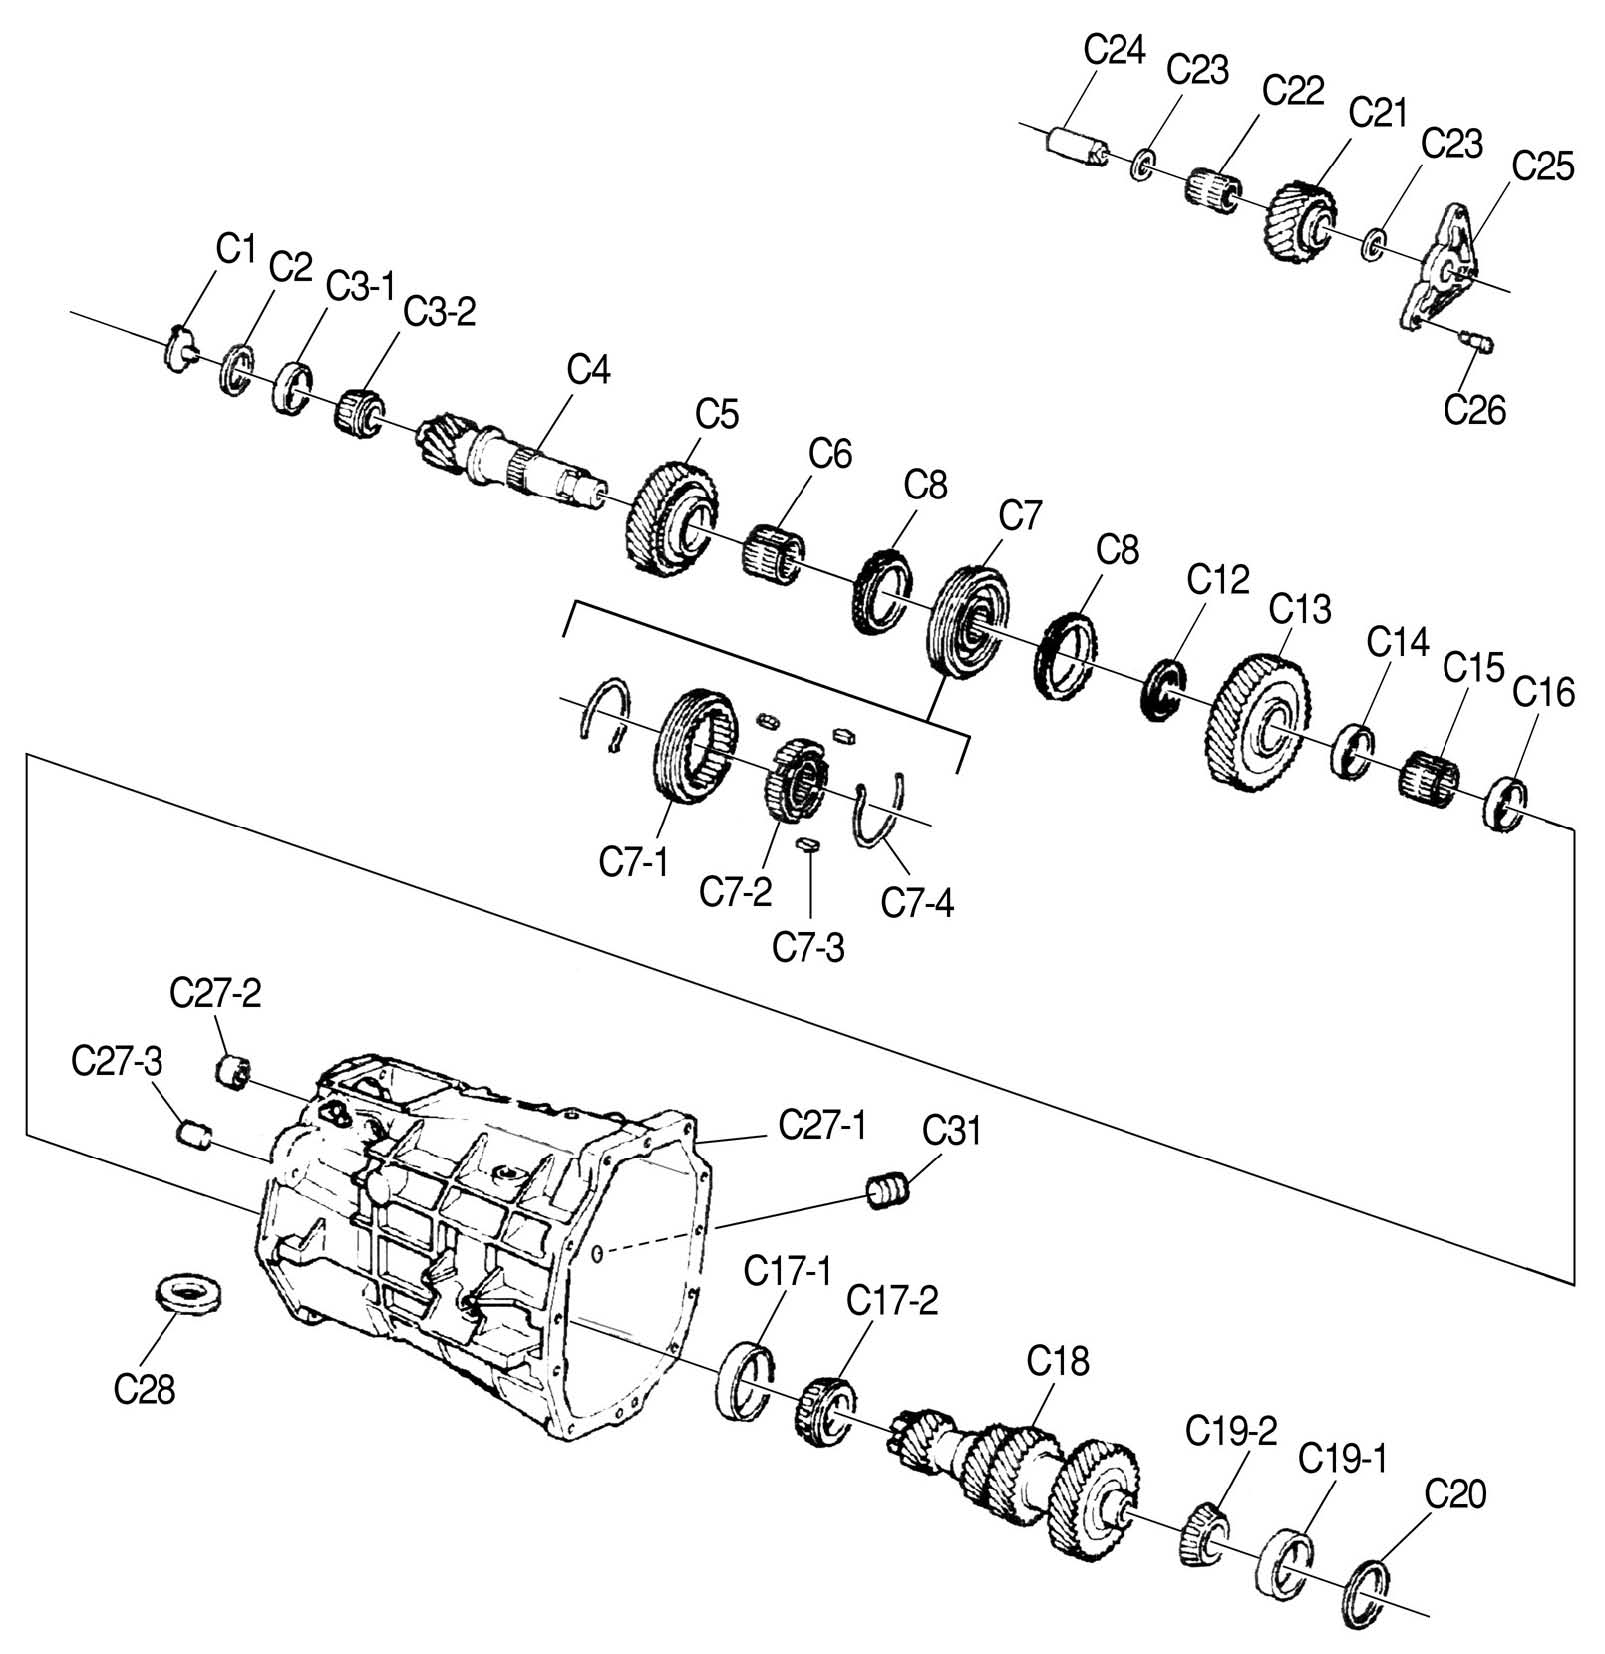 t56 manual transmission diagram  t56  free engine image